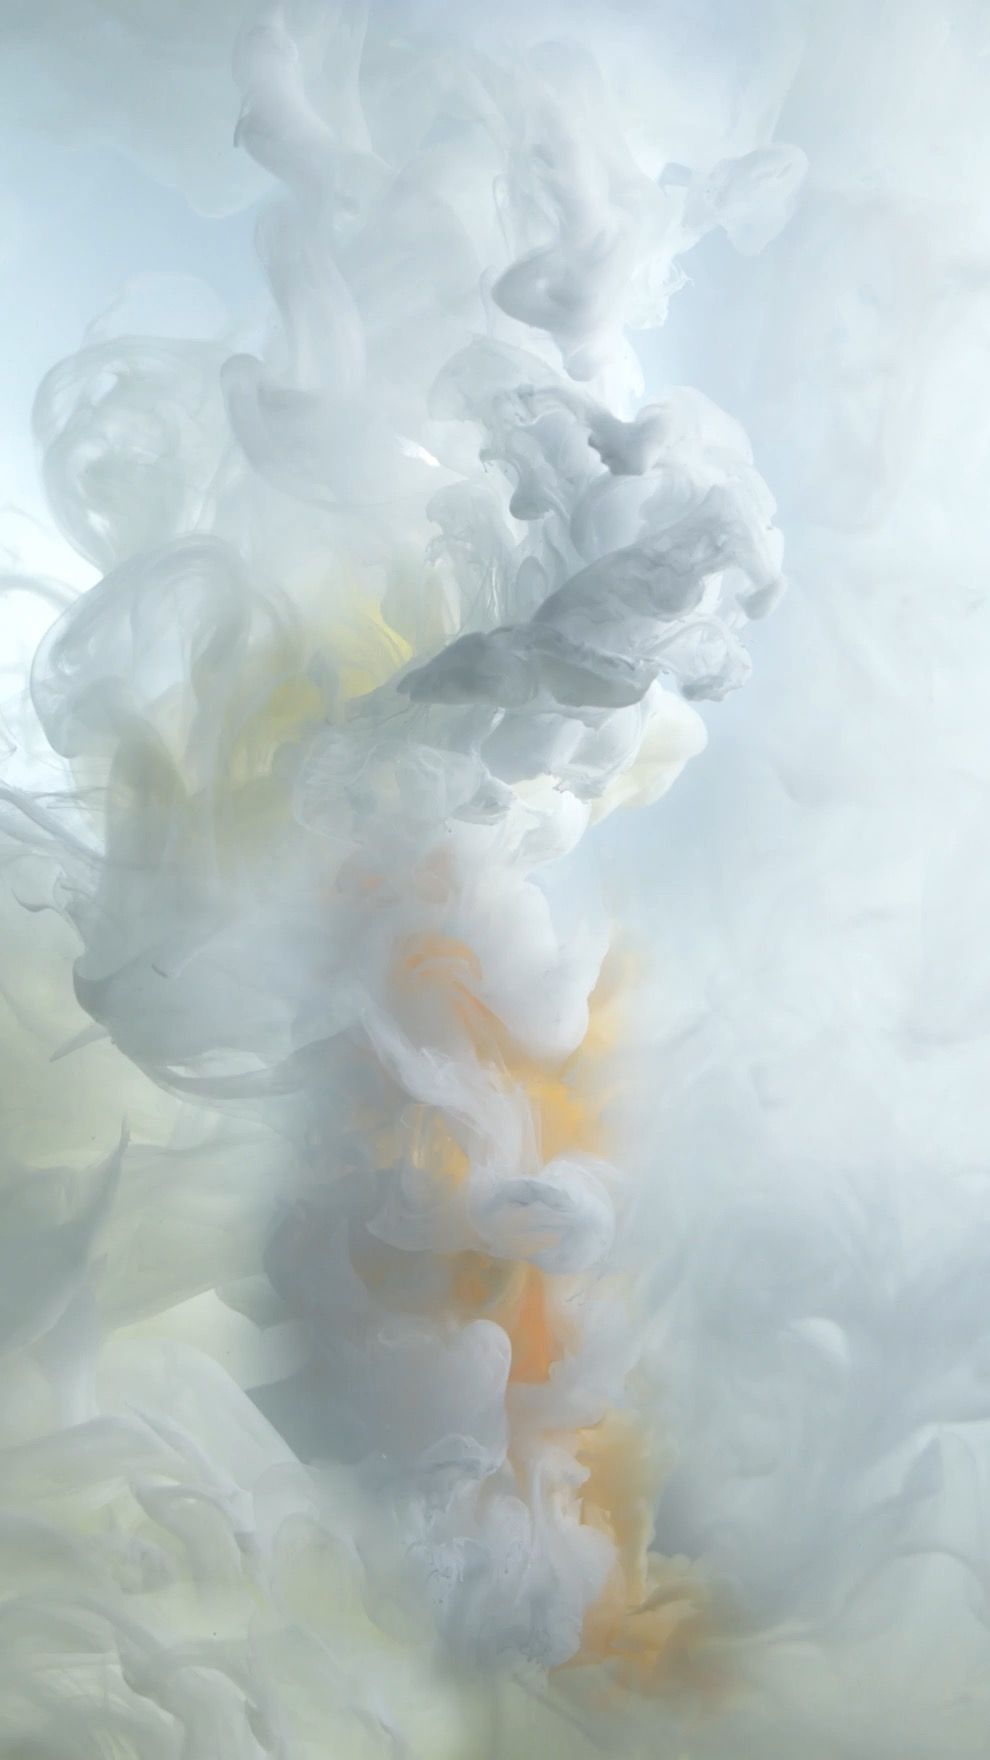 Iphone 7 Live Wallpaper Ink White Official Ios 10 Stock Wallpaper Wallpapers Central Live Wallpaper Iphone Iphone 6s Wallpaper Smoke Wallpaper